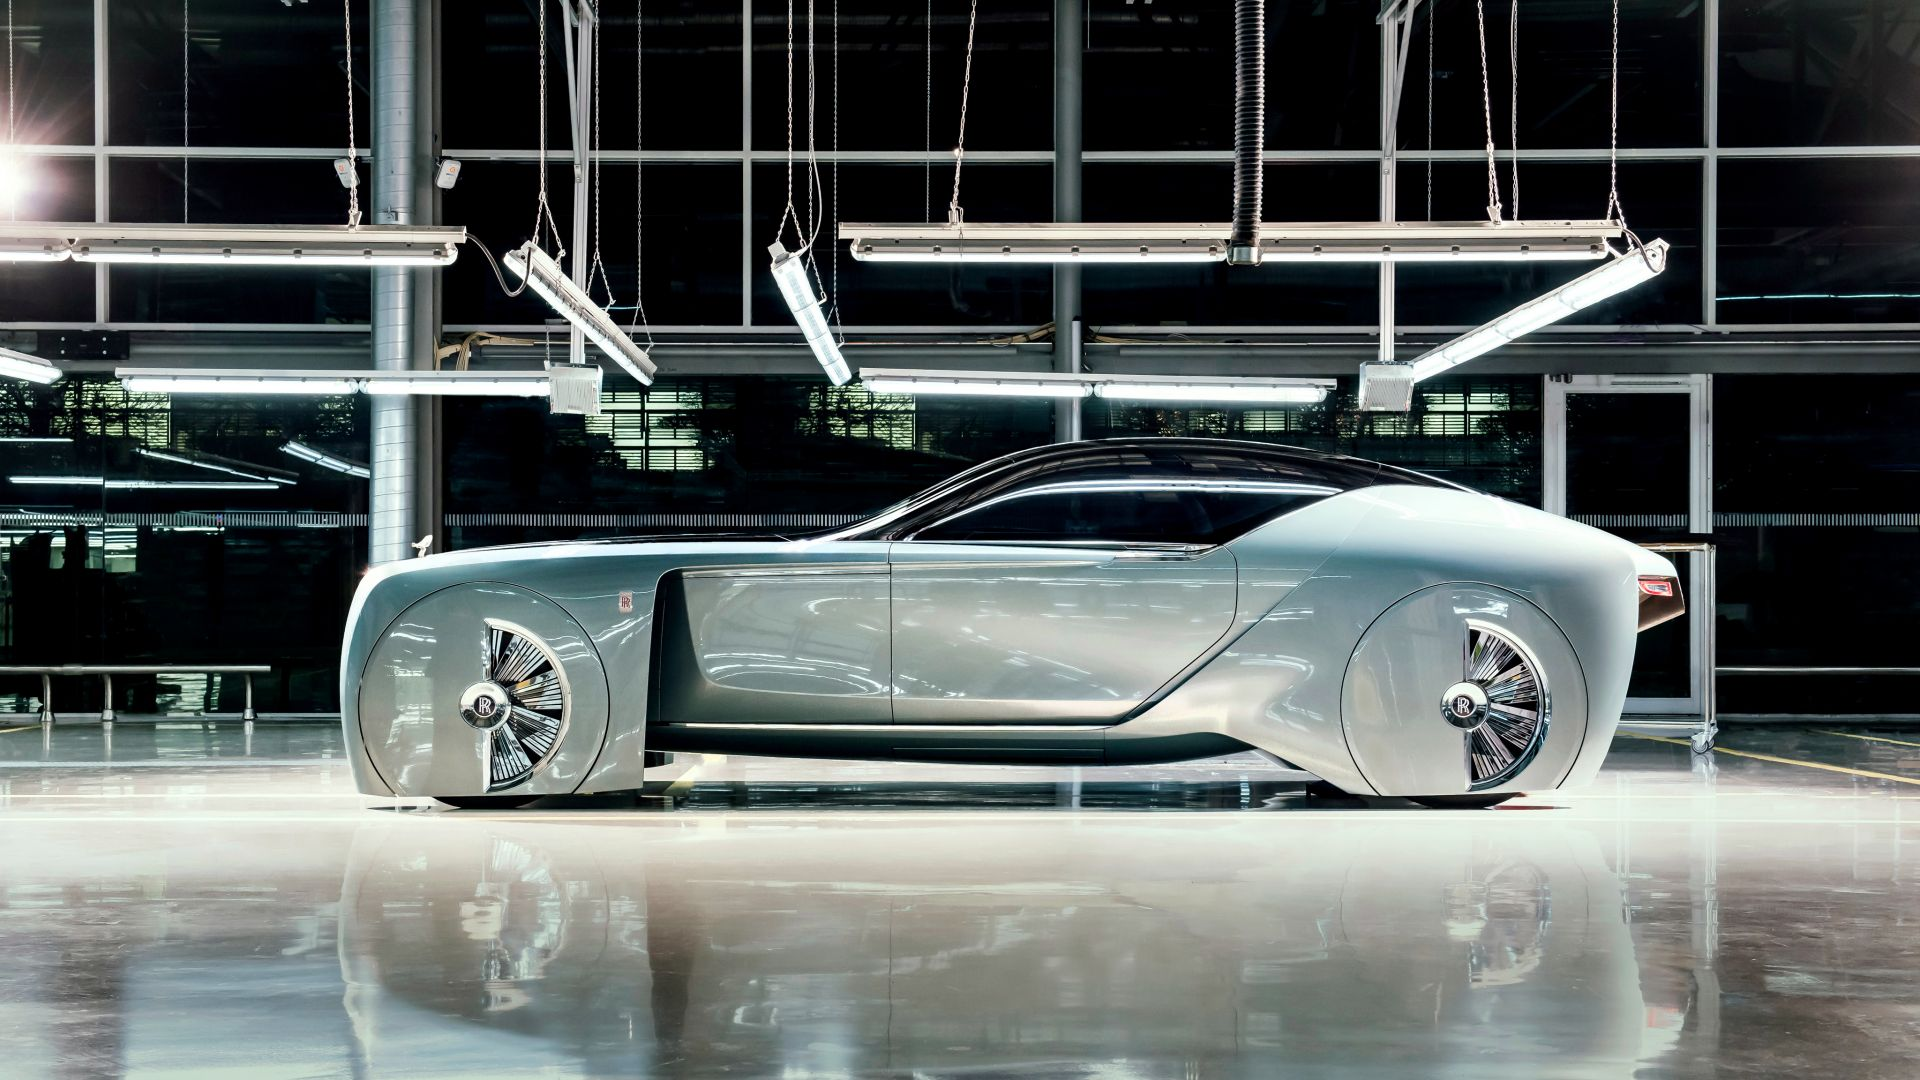 Tags: Rolls-Royce Vision Next 100, future cars, futurism, silverWallpaper Rolls-Royce Vision Next 100, future cars, futurism, silver, Cars & Bikes / Search Results - 웹